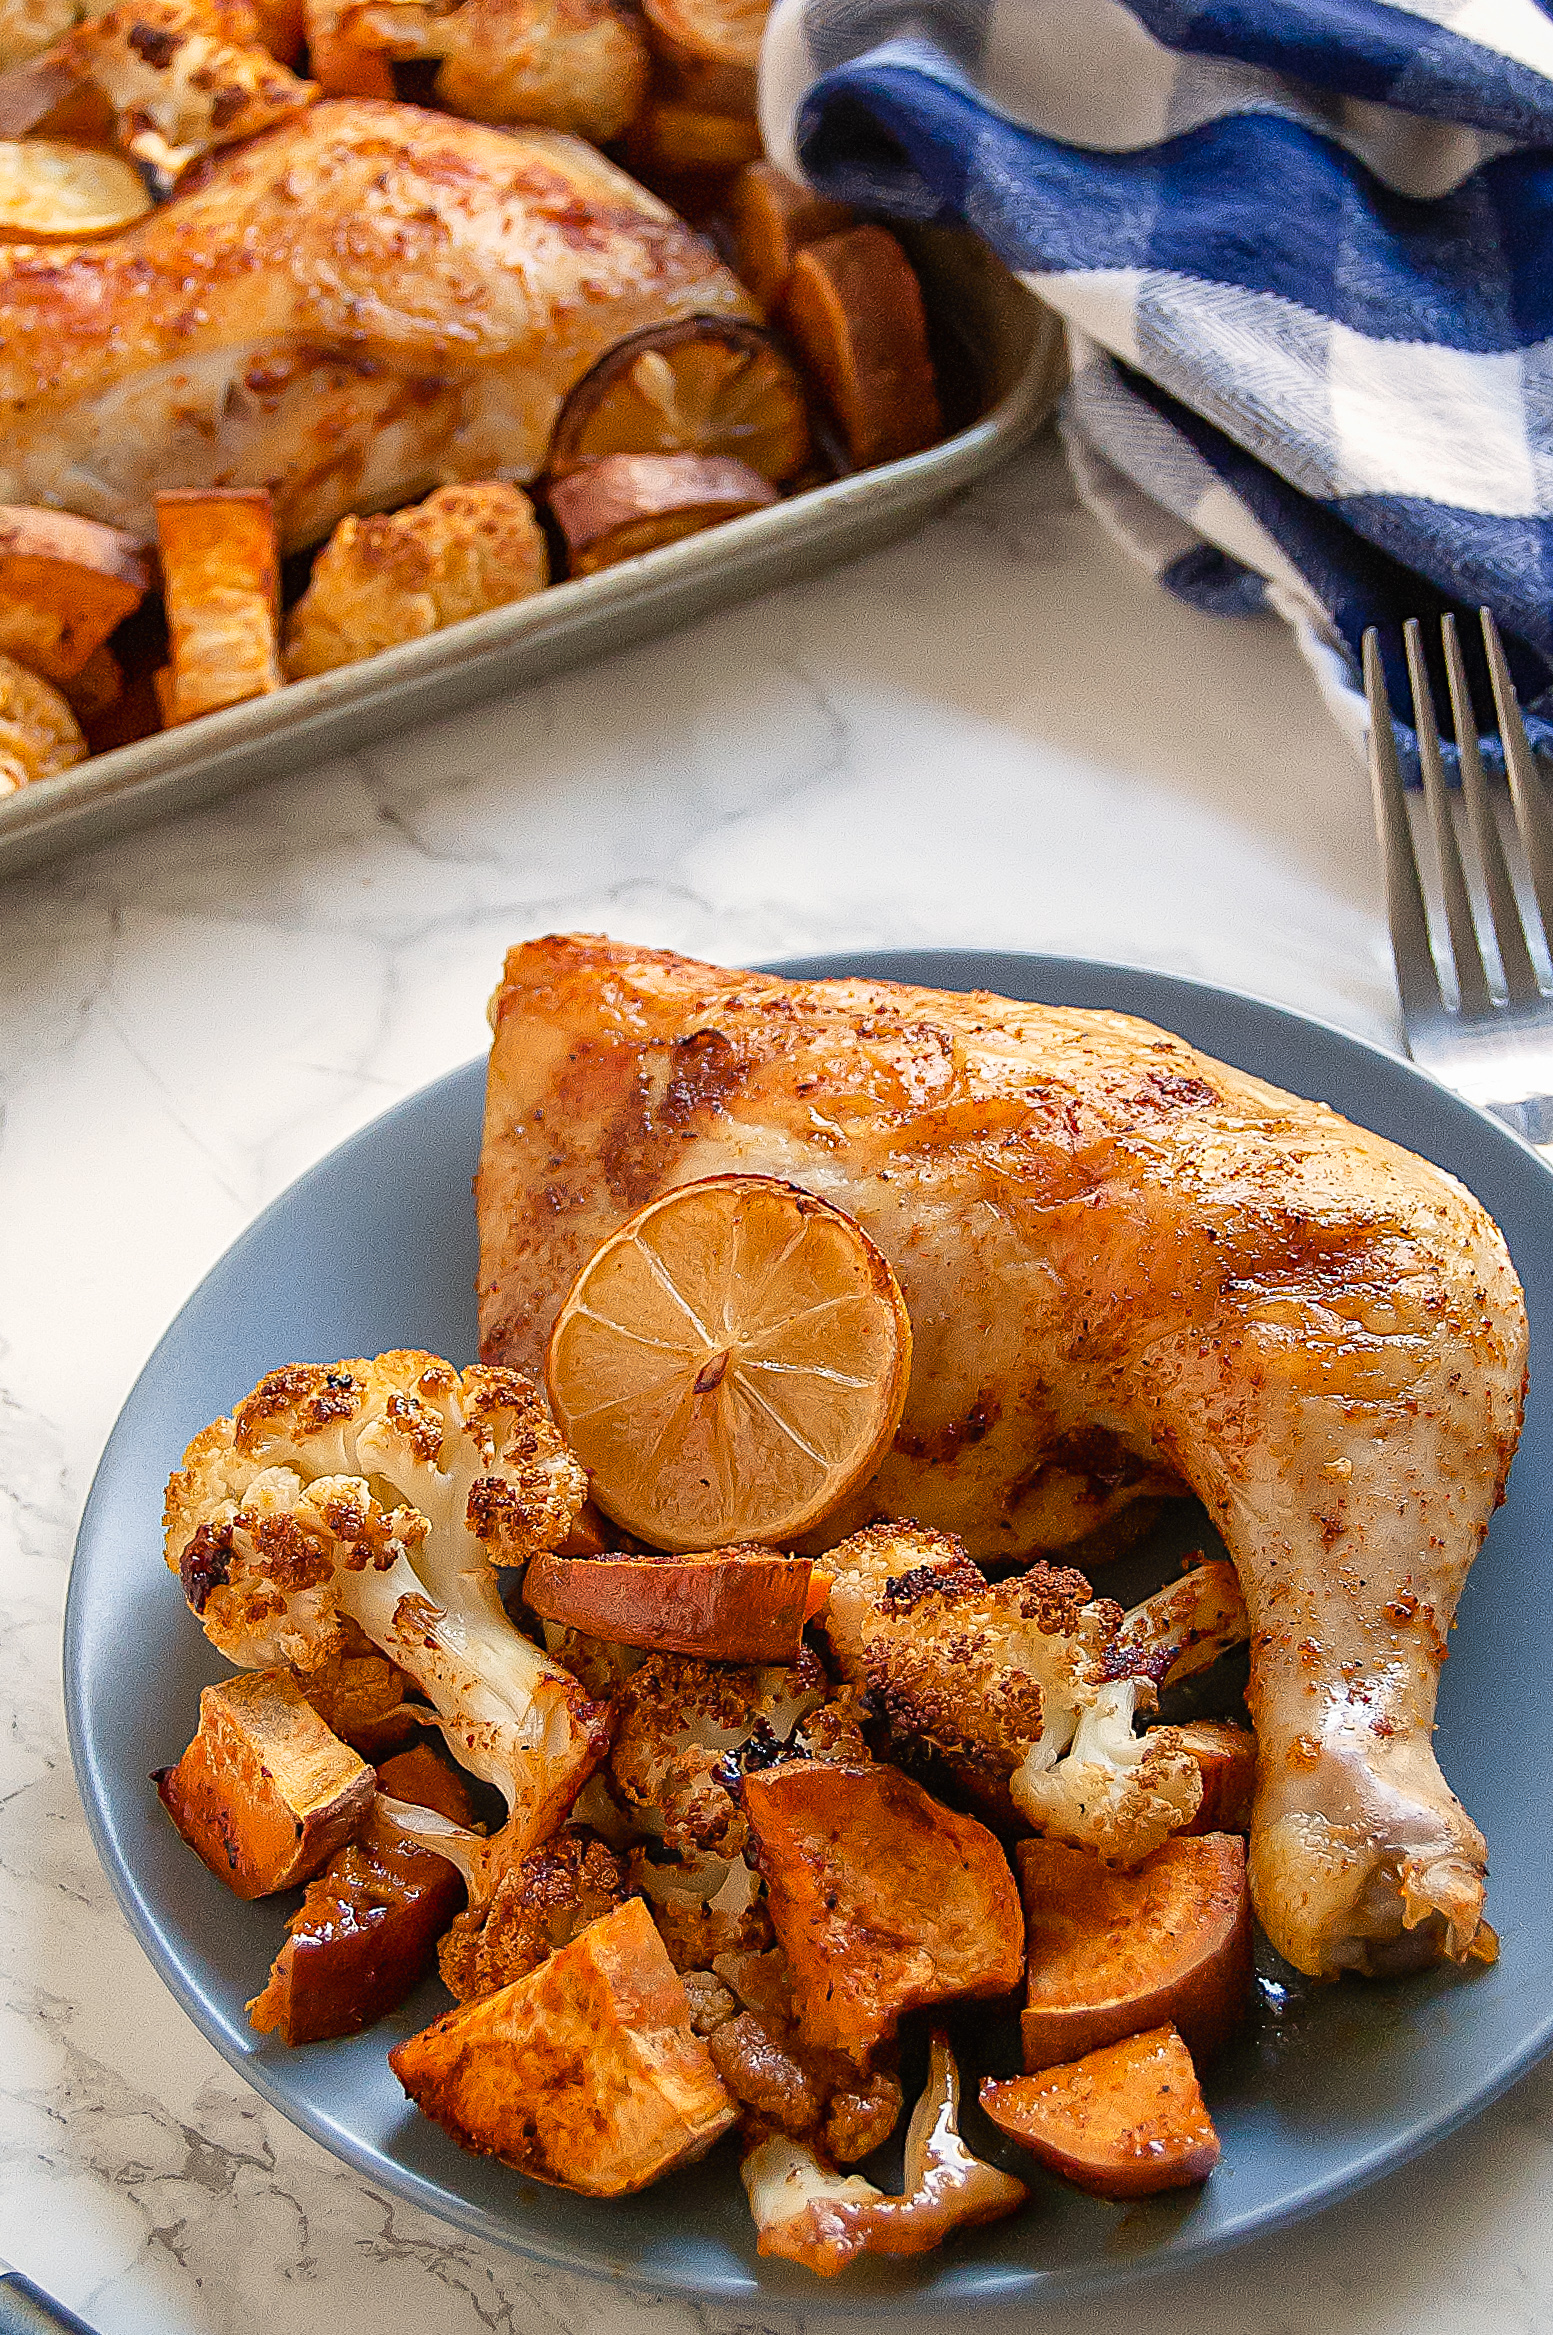 Smoky Spiced Lemon Chicken Leg Quarters are an affordable, flavorful sheet pan dinner. Little hands-on time for an easy weeknight dinner. Naturally gluten-free, dairy-free, and free of all other top 8 most common food allergens.